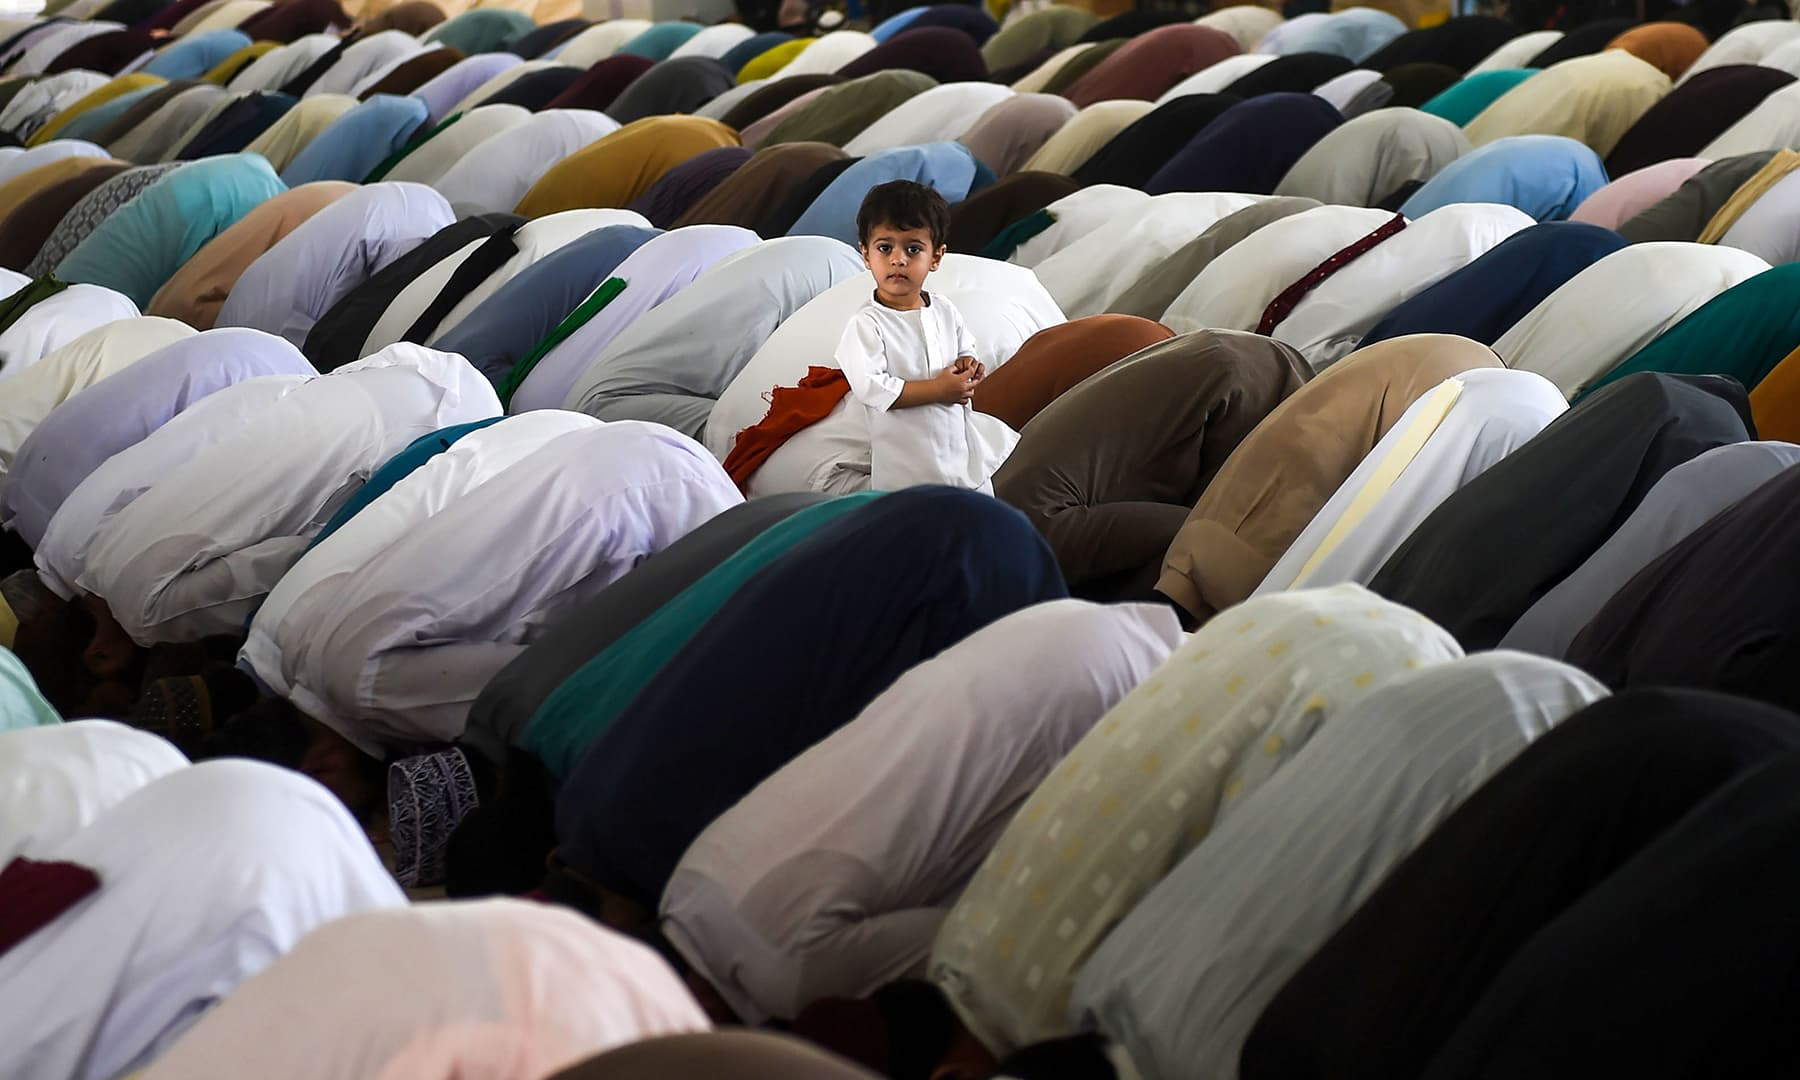 A child stands and looks on among worshipers as they offer Jumatul Wida prayers on the last Friday of the holy fasting month of Ramazan at a mosque in Karachi on May 31. — AFP